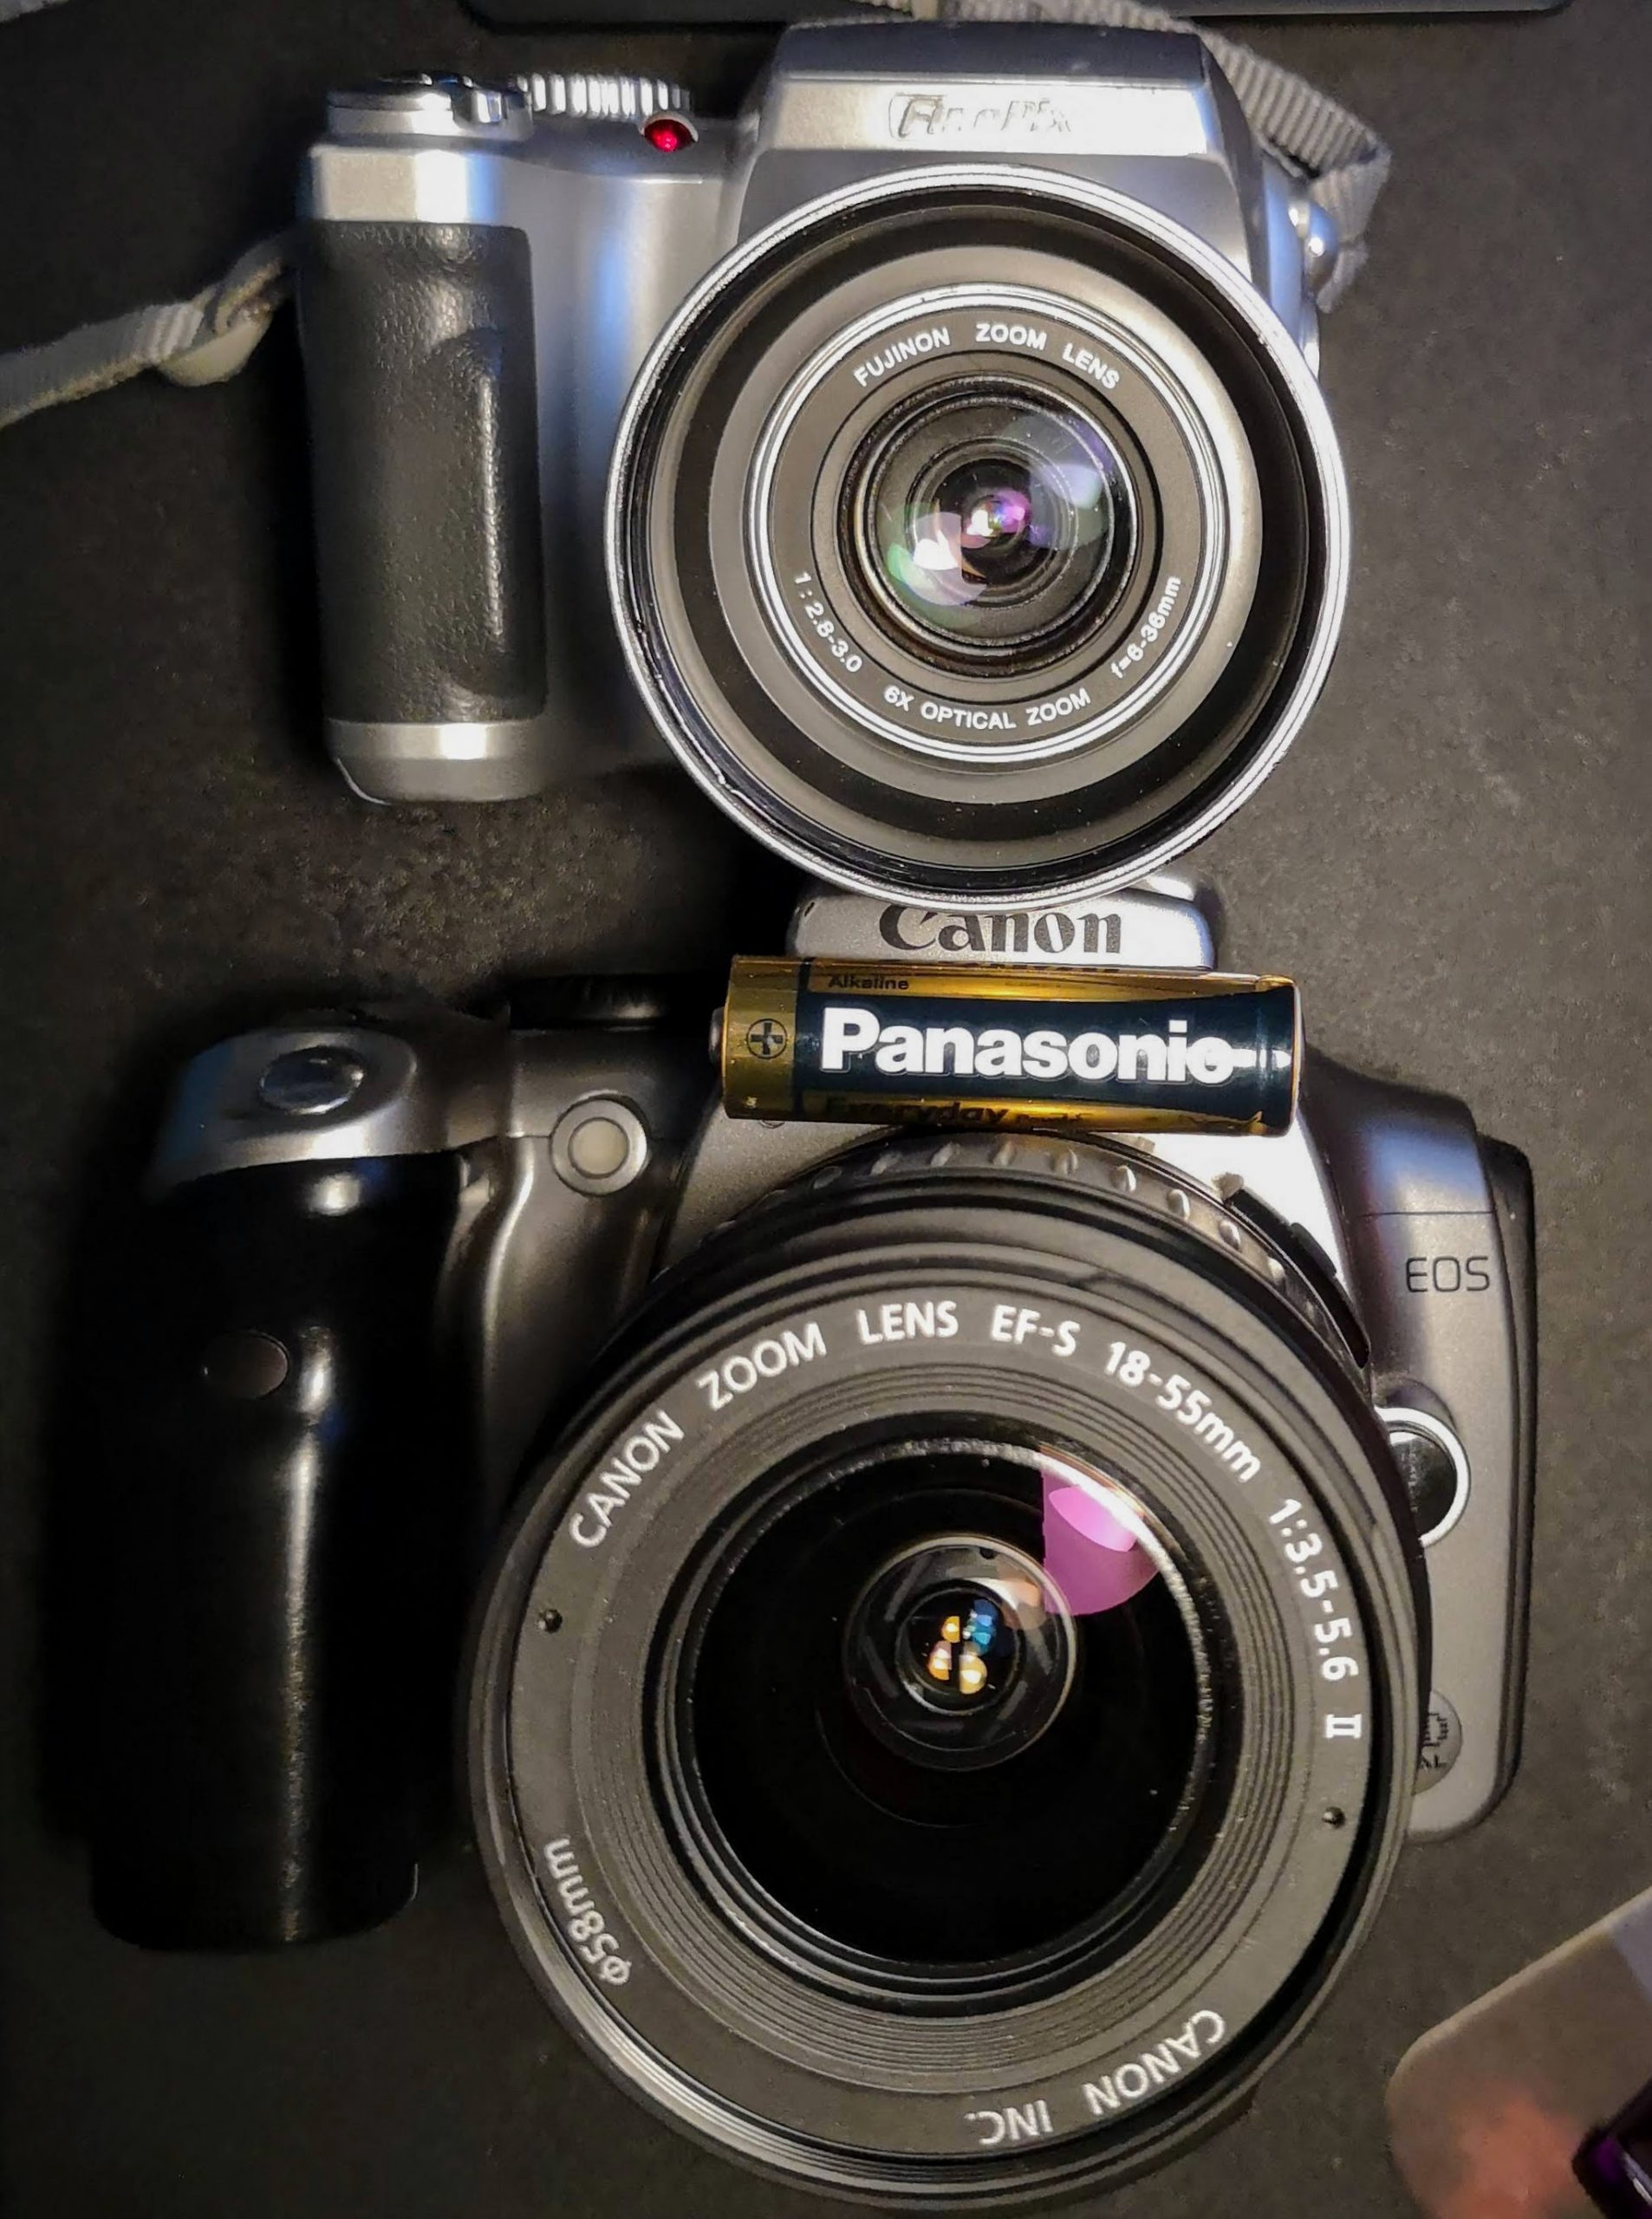 S3000 (top) compared to Canon EOS 300D